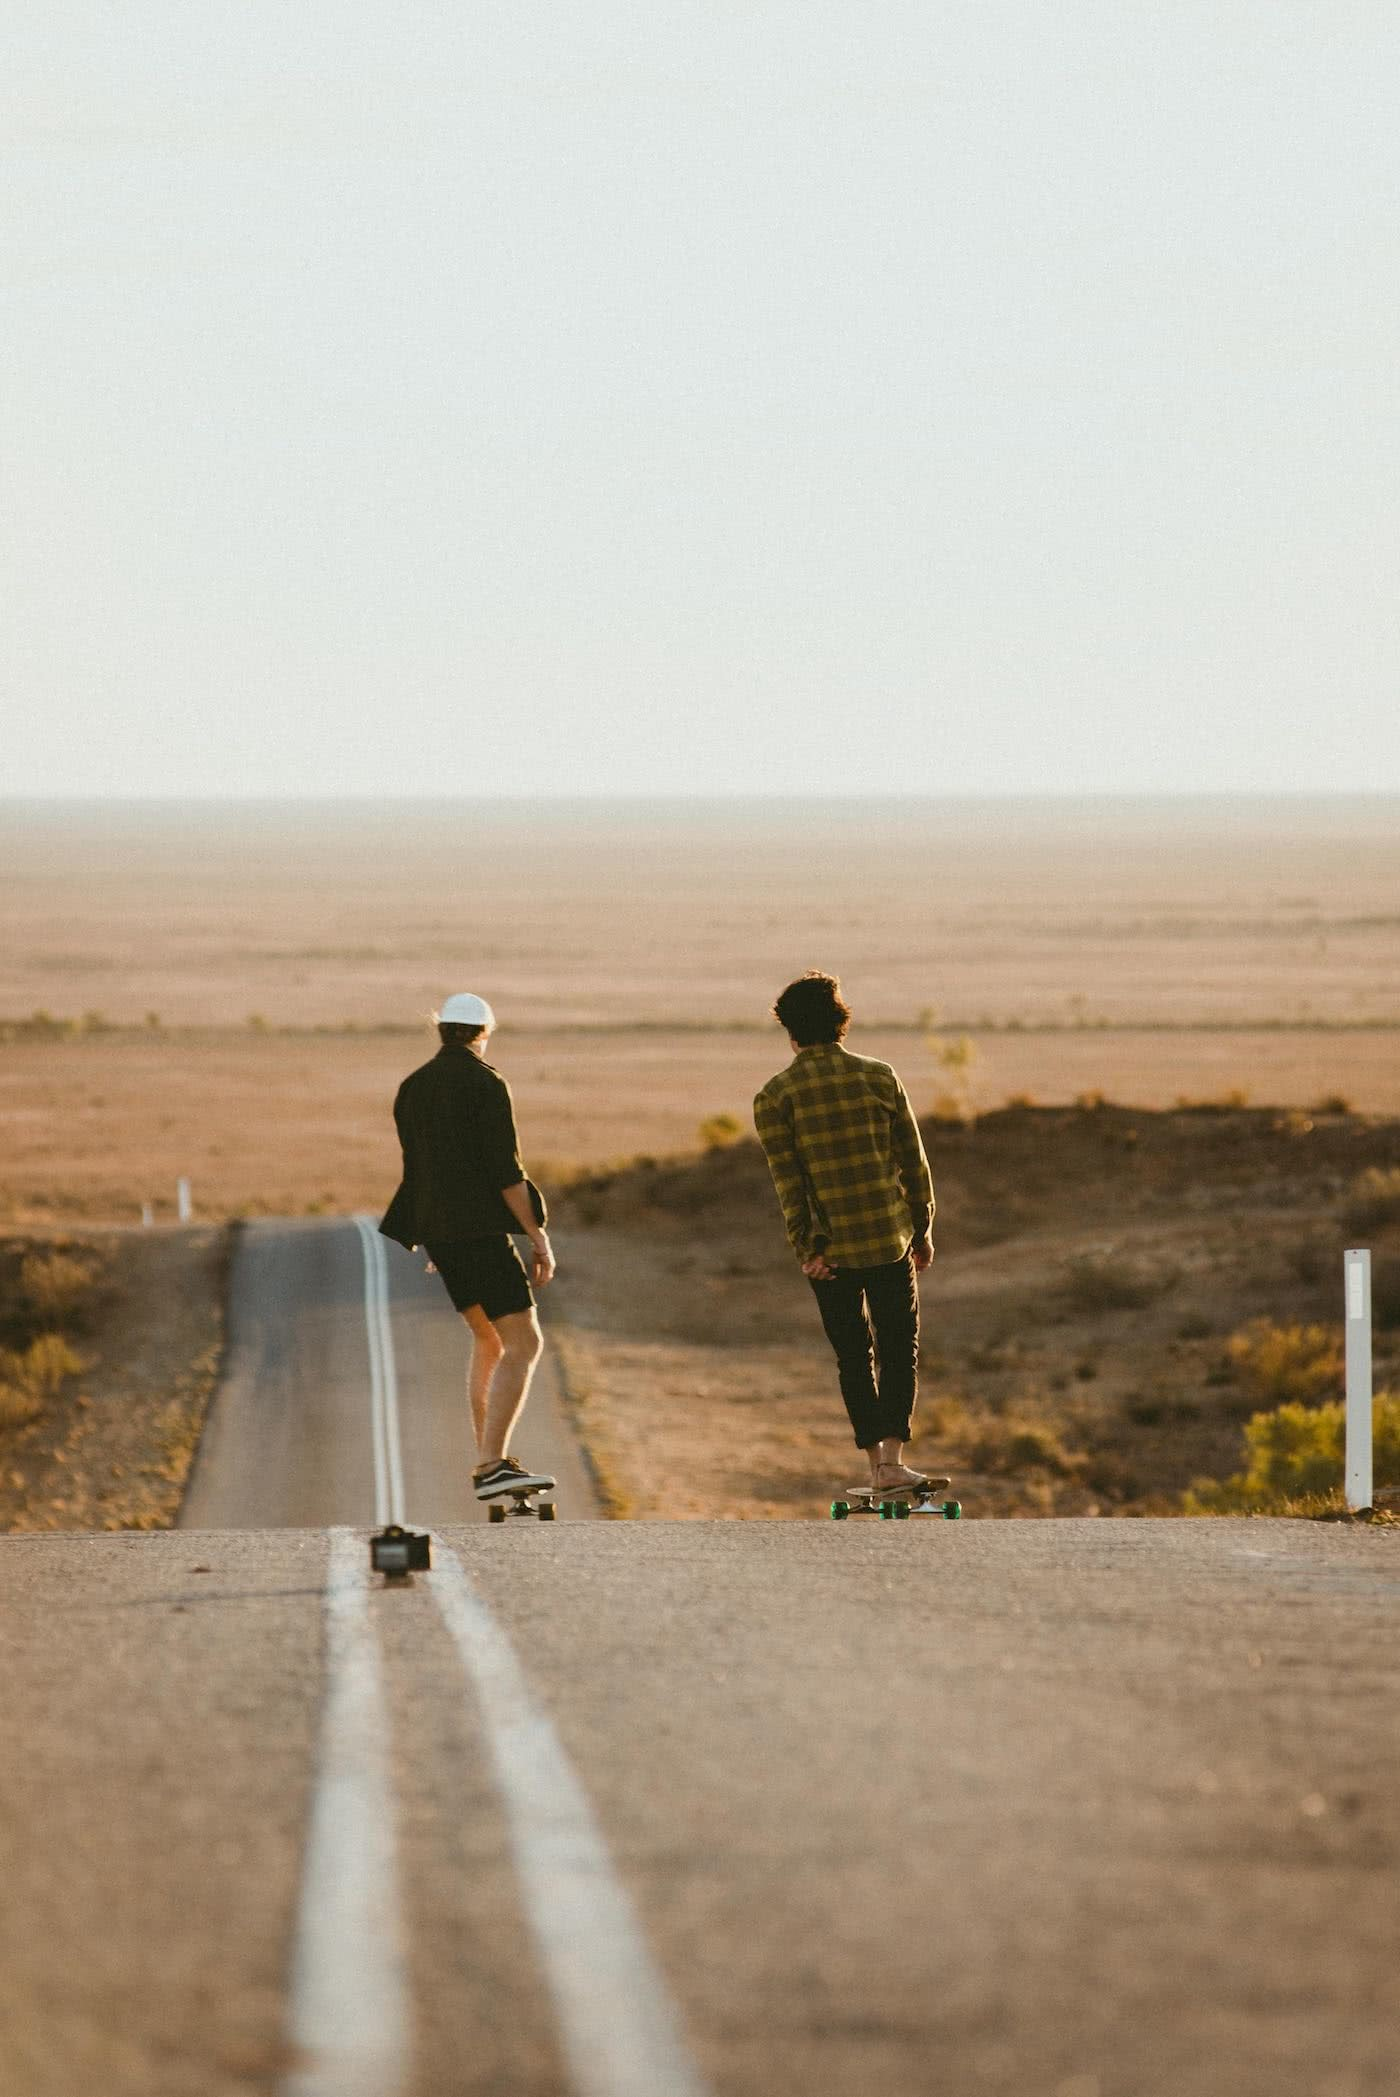 5 Reasons To Always Carry A Skateboard, Georgia Farrell, skateboarding, open road, desert